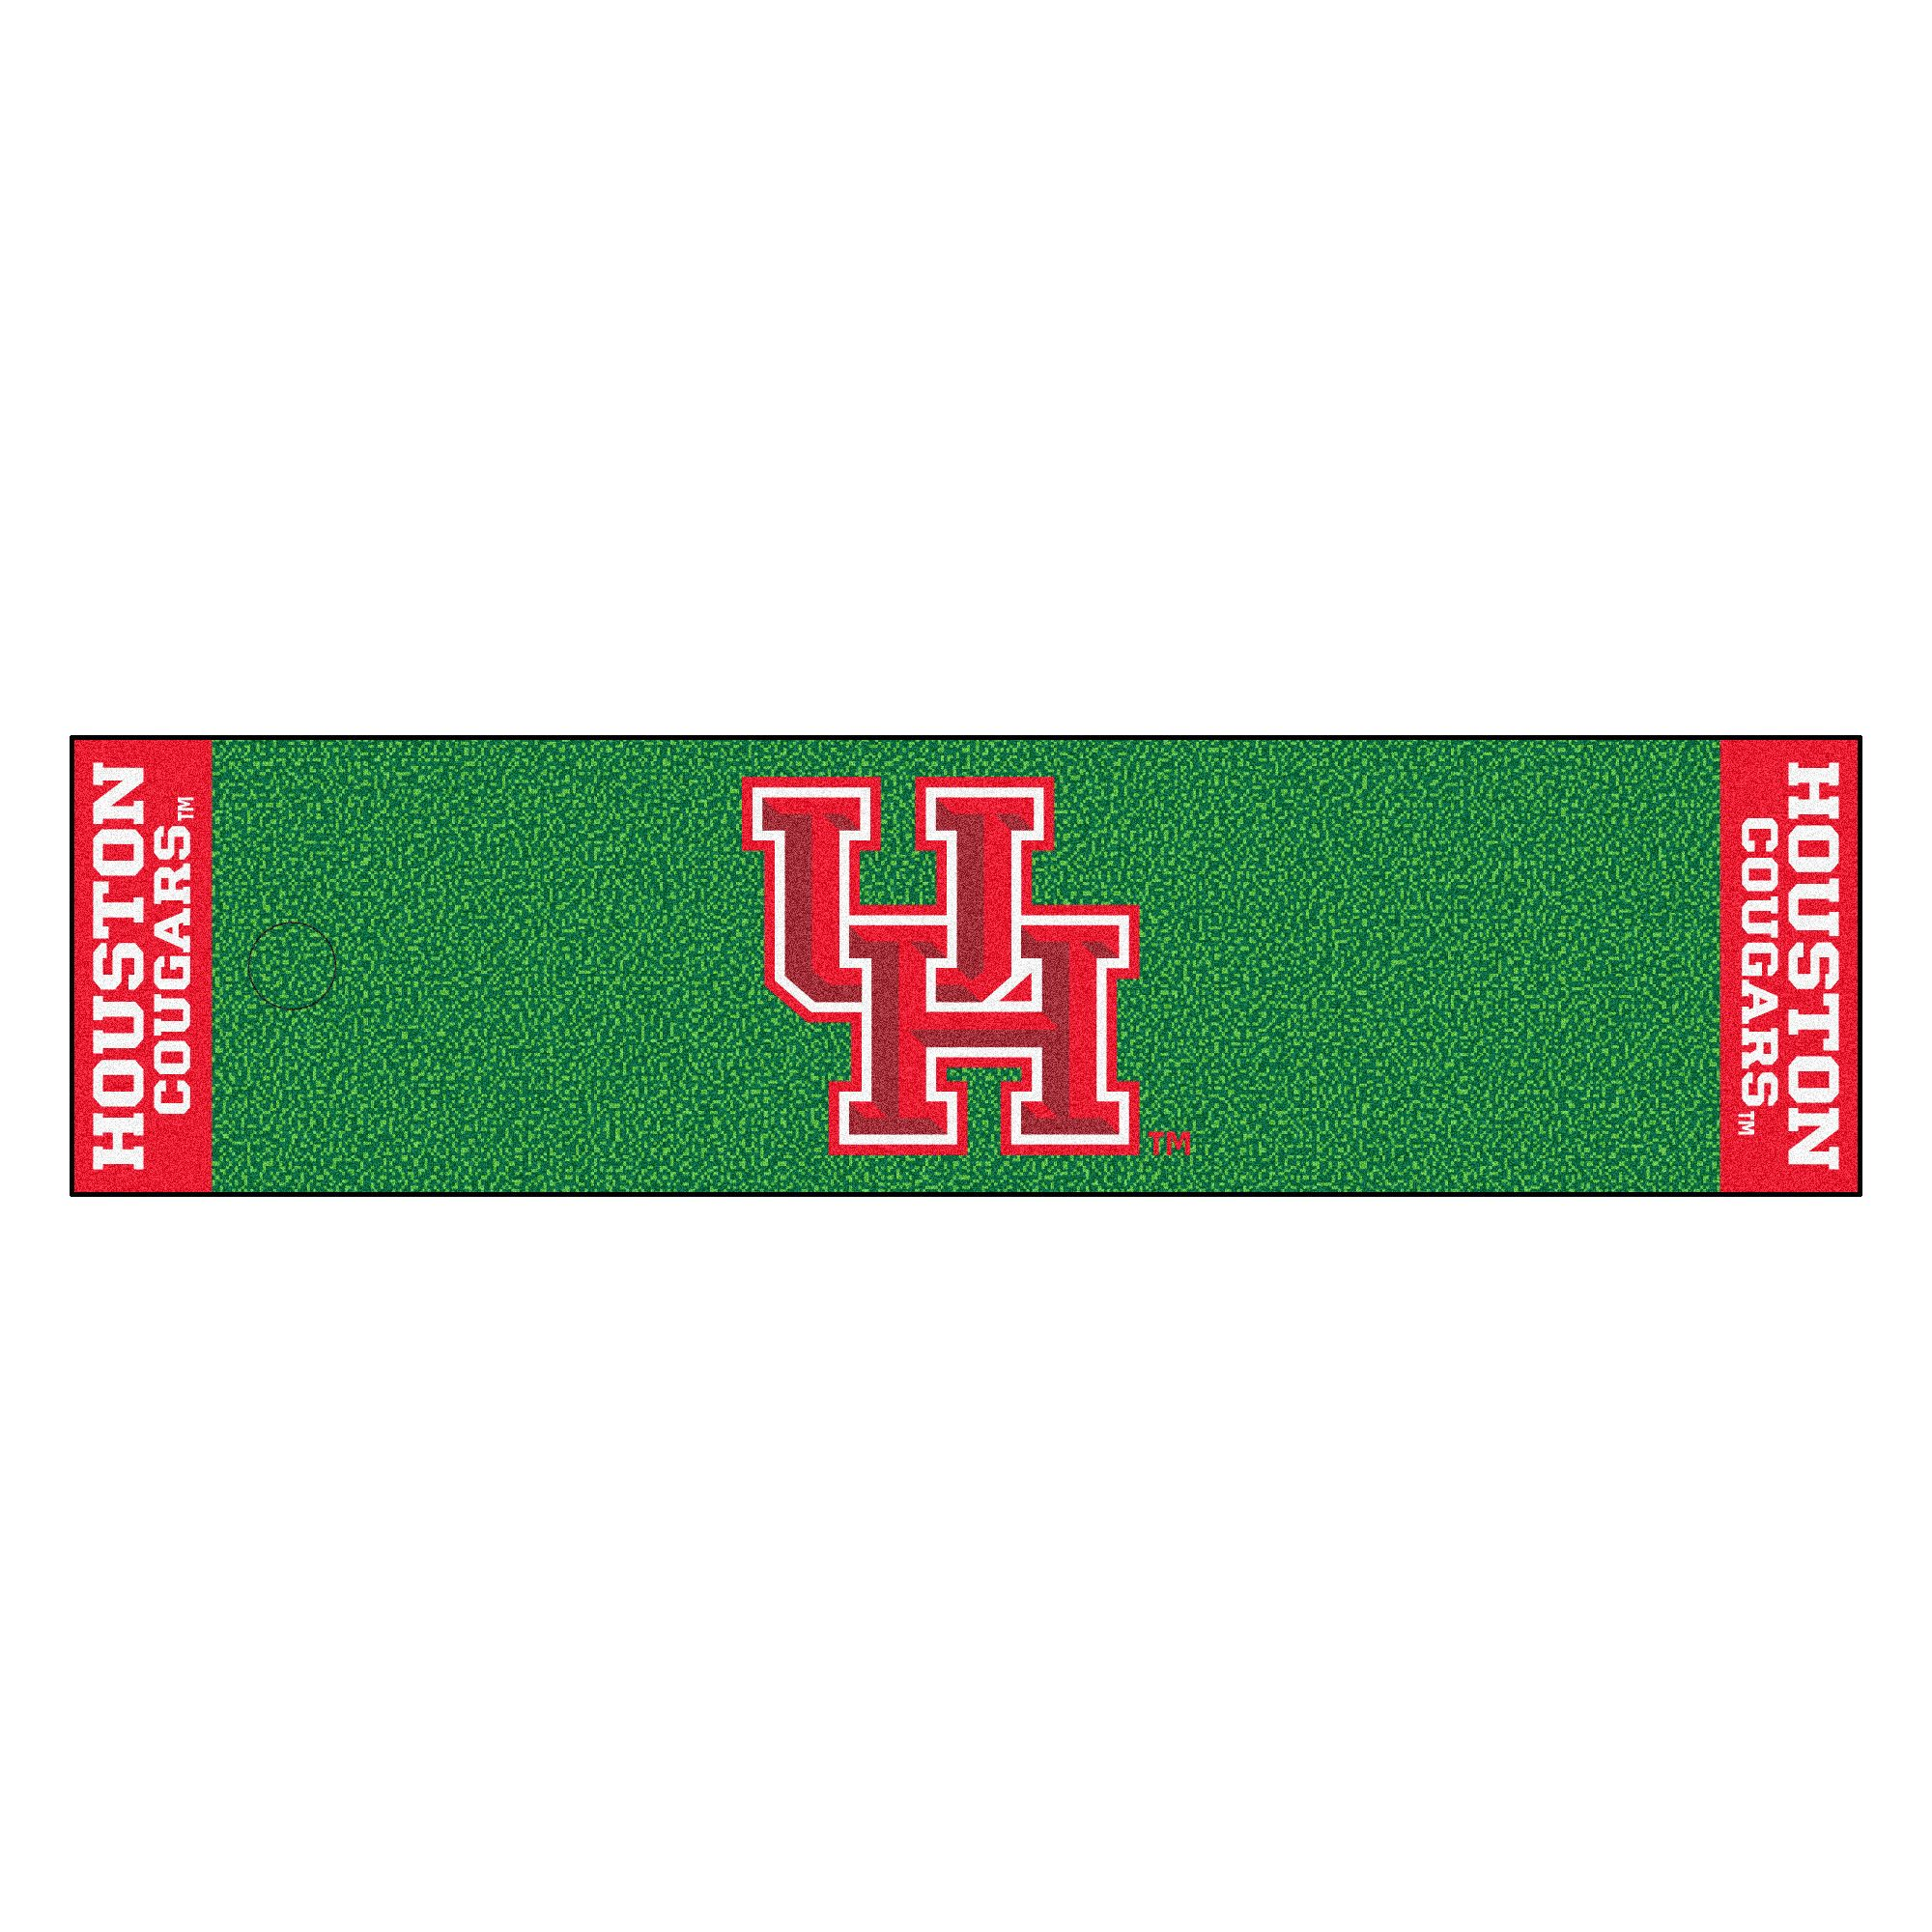 University of Houston Putting Green Mat - Officially licensed ...